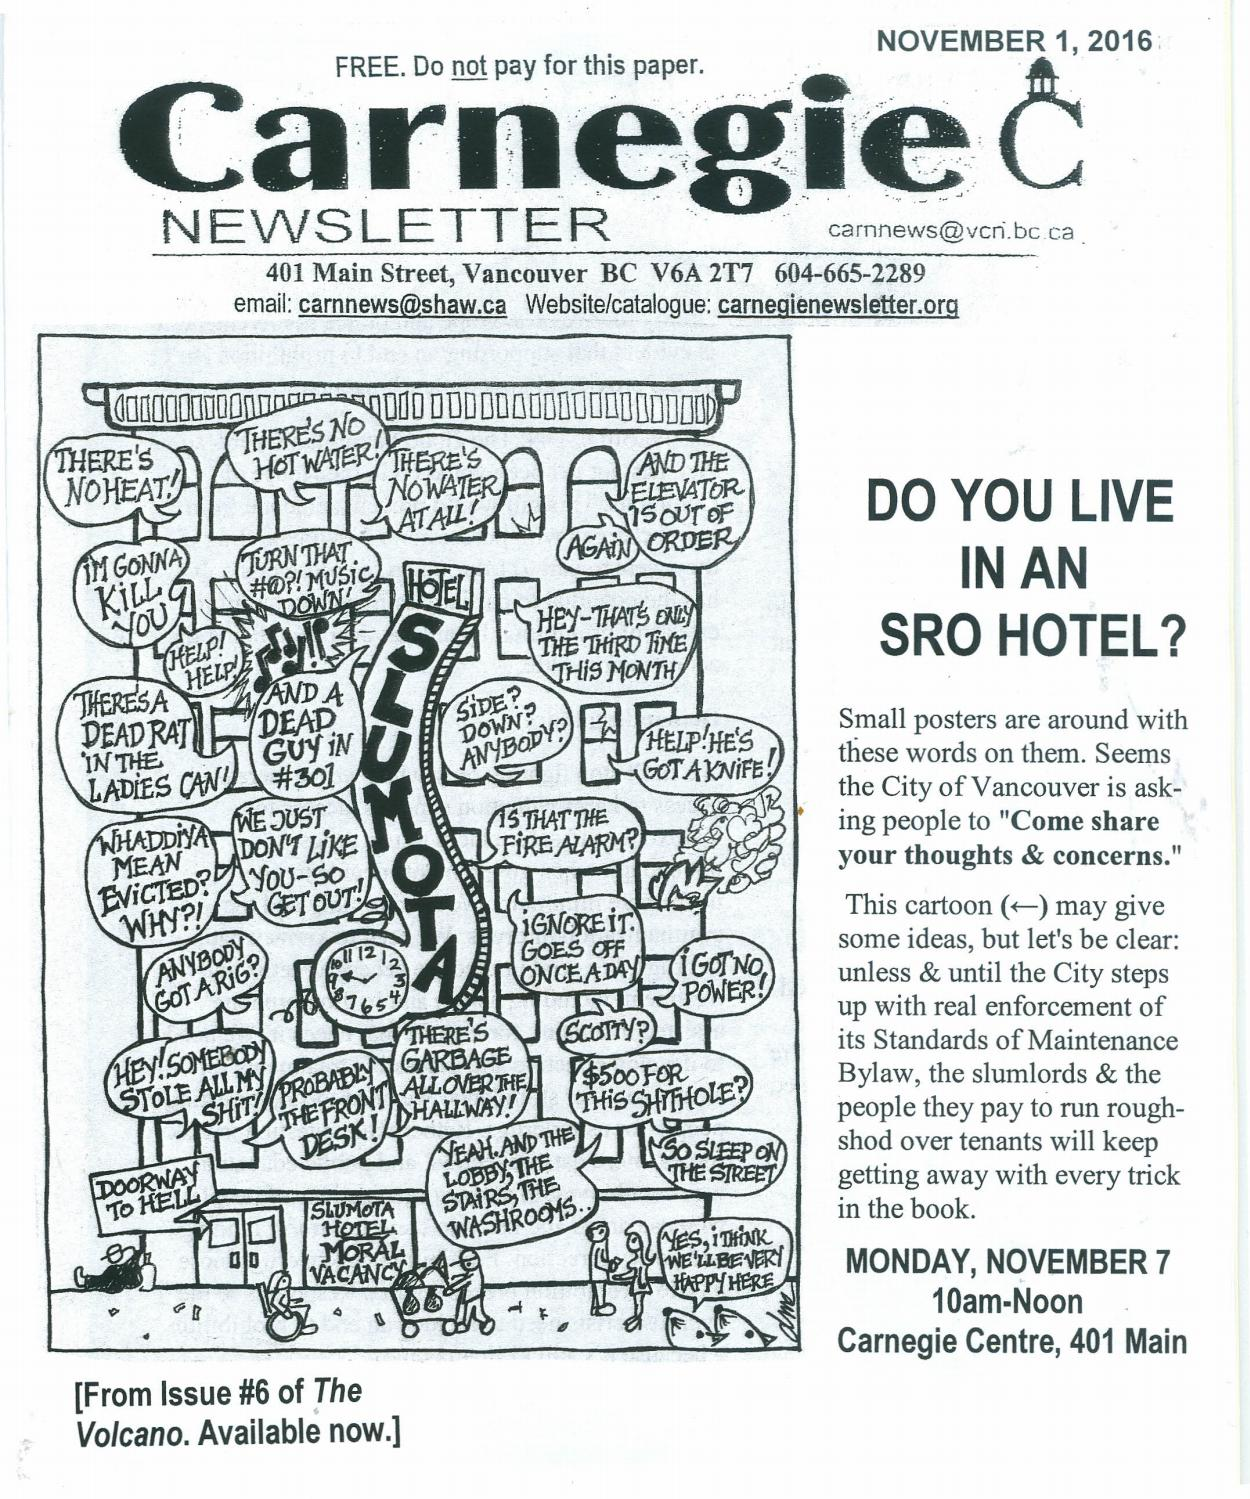 7 wise truths from Carnegie